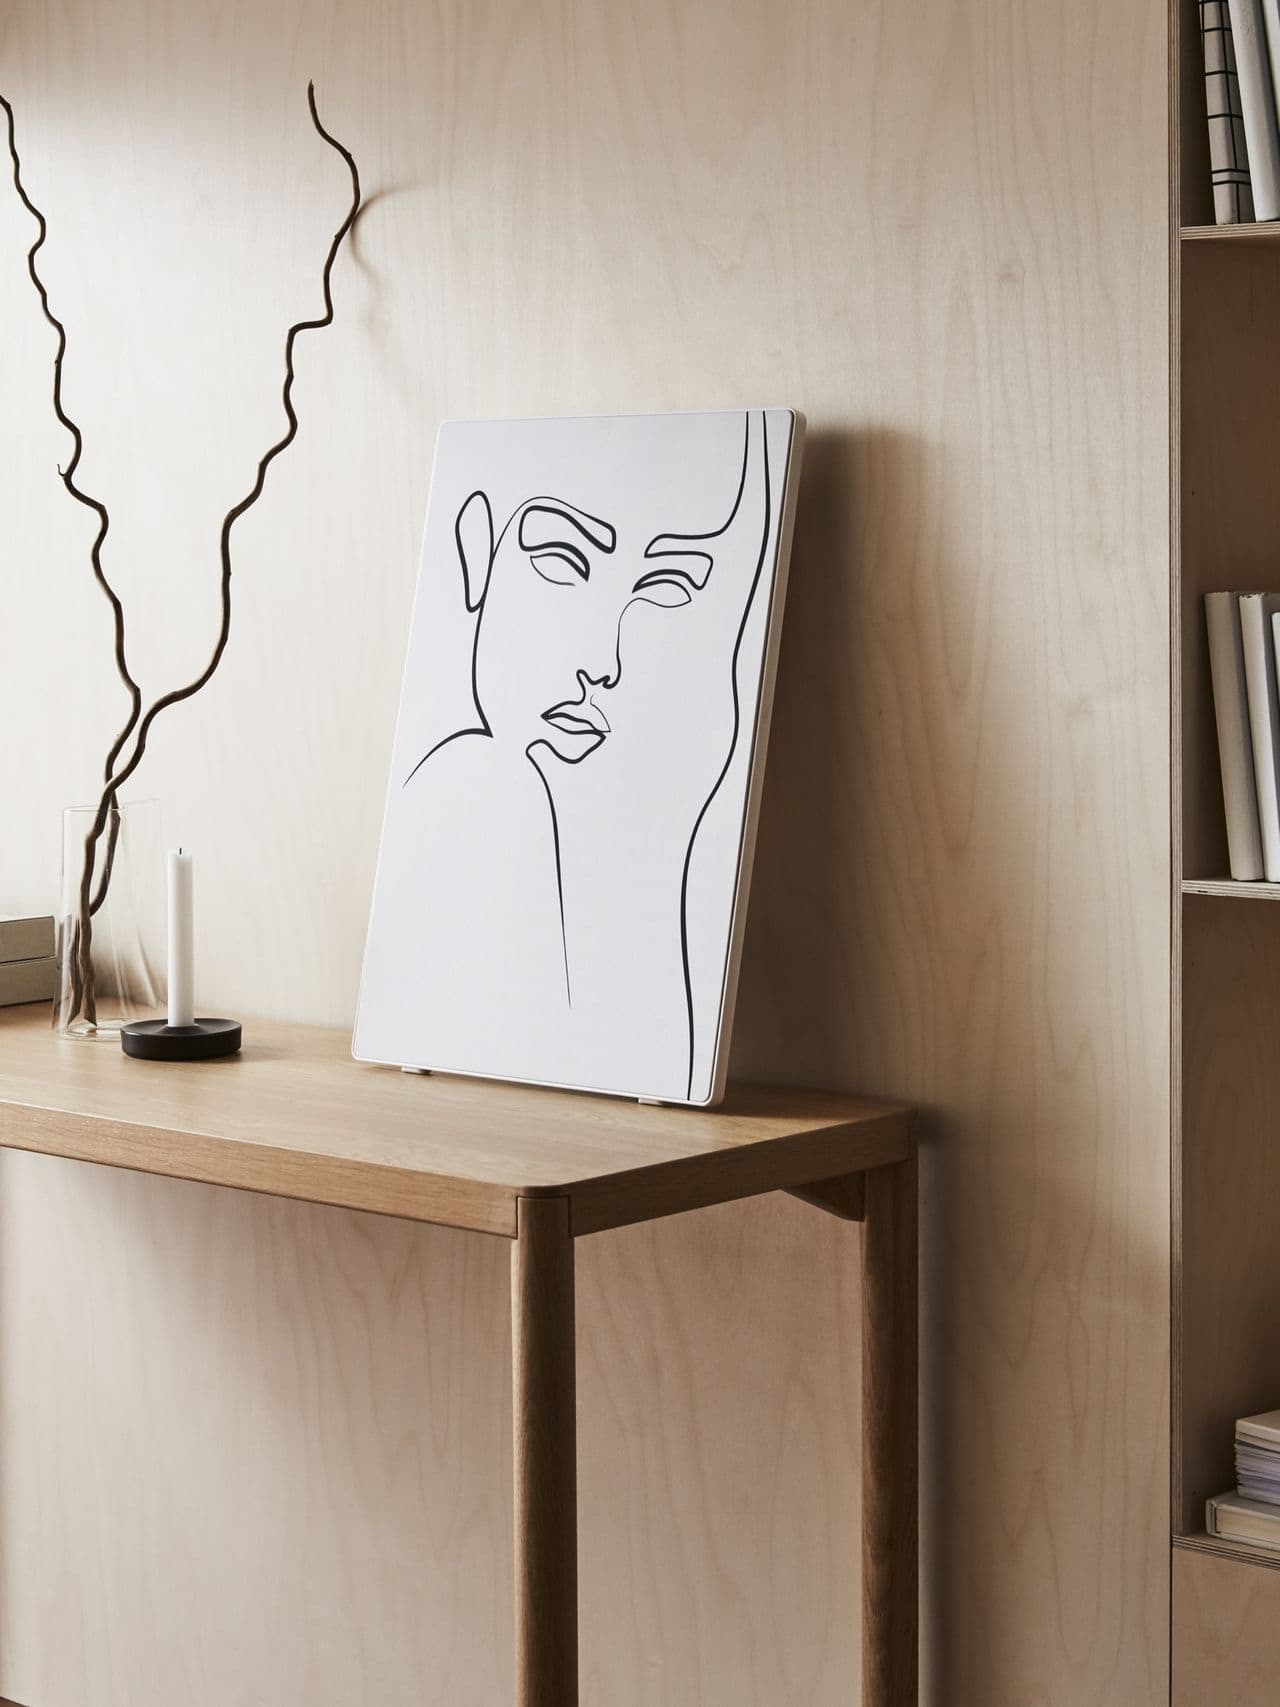 IKEA and Sonos' new speakers are a work of art